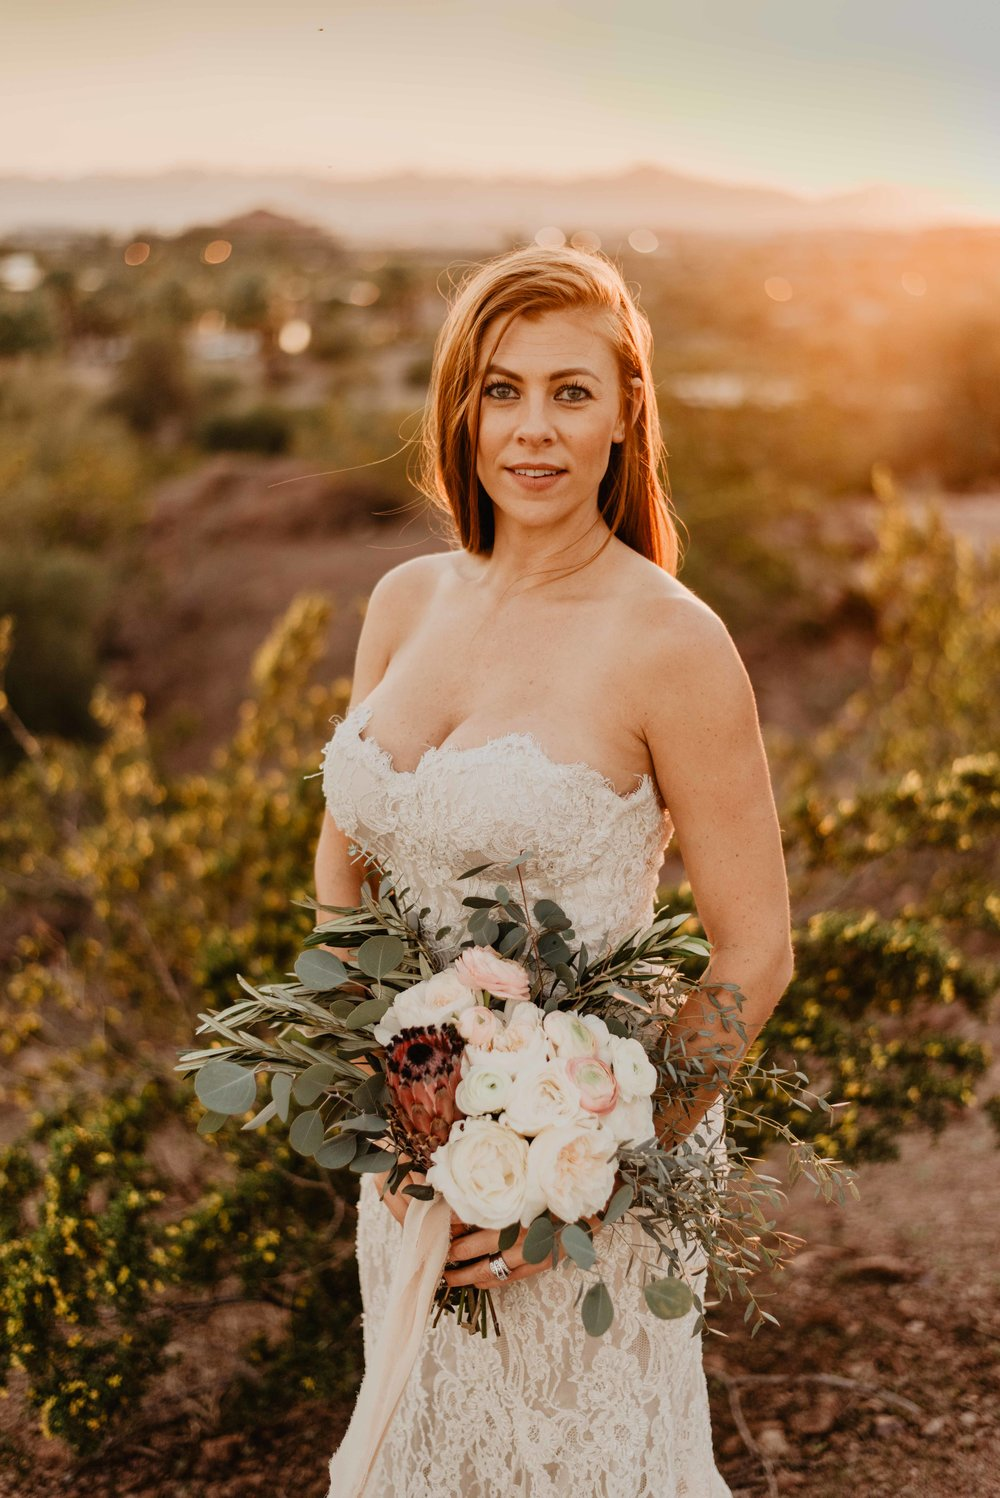 Olia Zavozina Wedding Dress for Rent! - New to the collection of dresses I offer to rent for my elopement and intimate wedding brides is this stunning Olia Zavozina dress! She's a beauty with lace and jewels with a sexy cut. The dress is a size ten, but fits more like a 2-4 with a C - D cup size. The dress also offers support with a built in bra structure. As you may know all of my dresses are named after National Parks. The people spoke (aka fans on Facebook) and this dress will be named Glacier! This dress will be available for rent at the price of $300 and you can alter the dress to fit your curves perfectly if needed!Why rent your dress?Renting your dress is a great choice for so many reasons!! It is a great way to save money in the ever expensive wedding industry, but it is also so much more than that! Renting your wedding dress is an eco friendly move. The stats are all out there with a simply Google search of how much waste is created from one wedding. Renting your dress leaves one less dress made or you could also purchase a more eco-friendly made dress by materials like bamboo. By renting and not buying you are also saving yourself some closet space for in the future!! After your wedding you will have all the images in the world to keep your memory of the dress around, why let it sit in your closet for decades collecting dust? Lastly, as an elopement bride renting your dress is fantastic! It is less you have to worry about getting from point A to point B if you are traveling to your elopement location. Also, most elopement brides are climbing mountains or like here in the desert you're trekking around in the red dirt. The dress will get dirty! By renting you do not have to worry about this being an concern on your big day!Interested in a dress or more information?? Contact me!